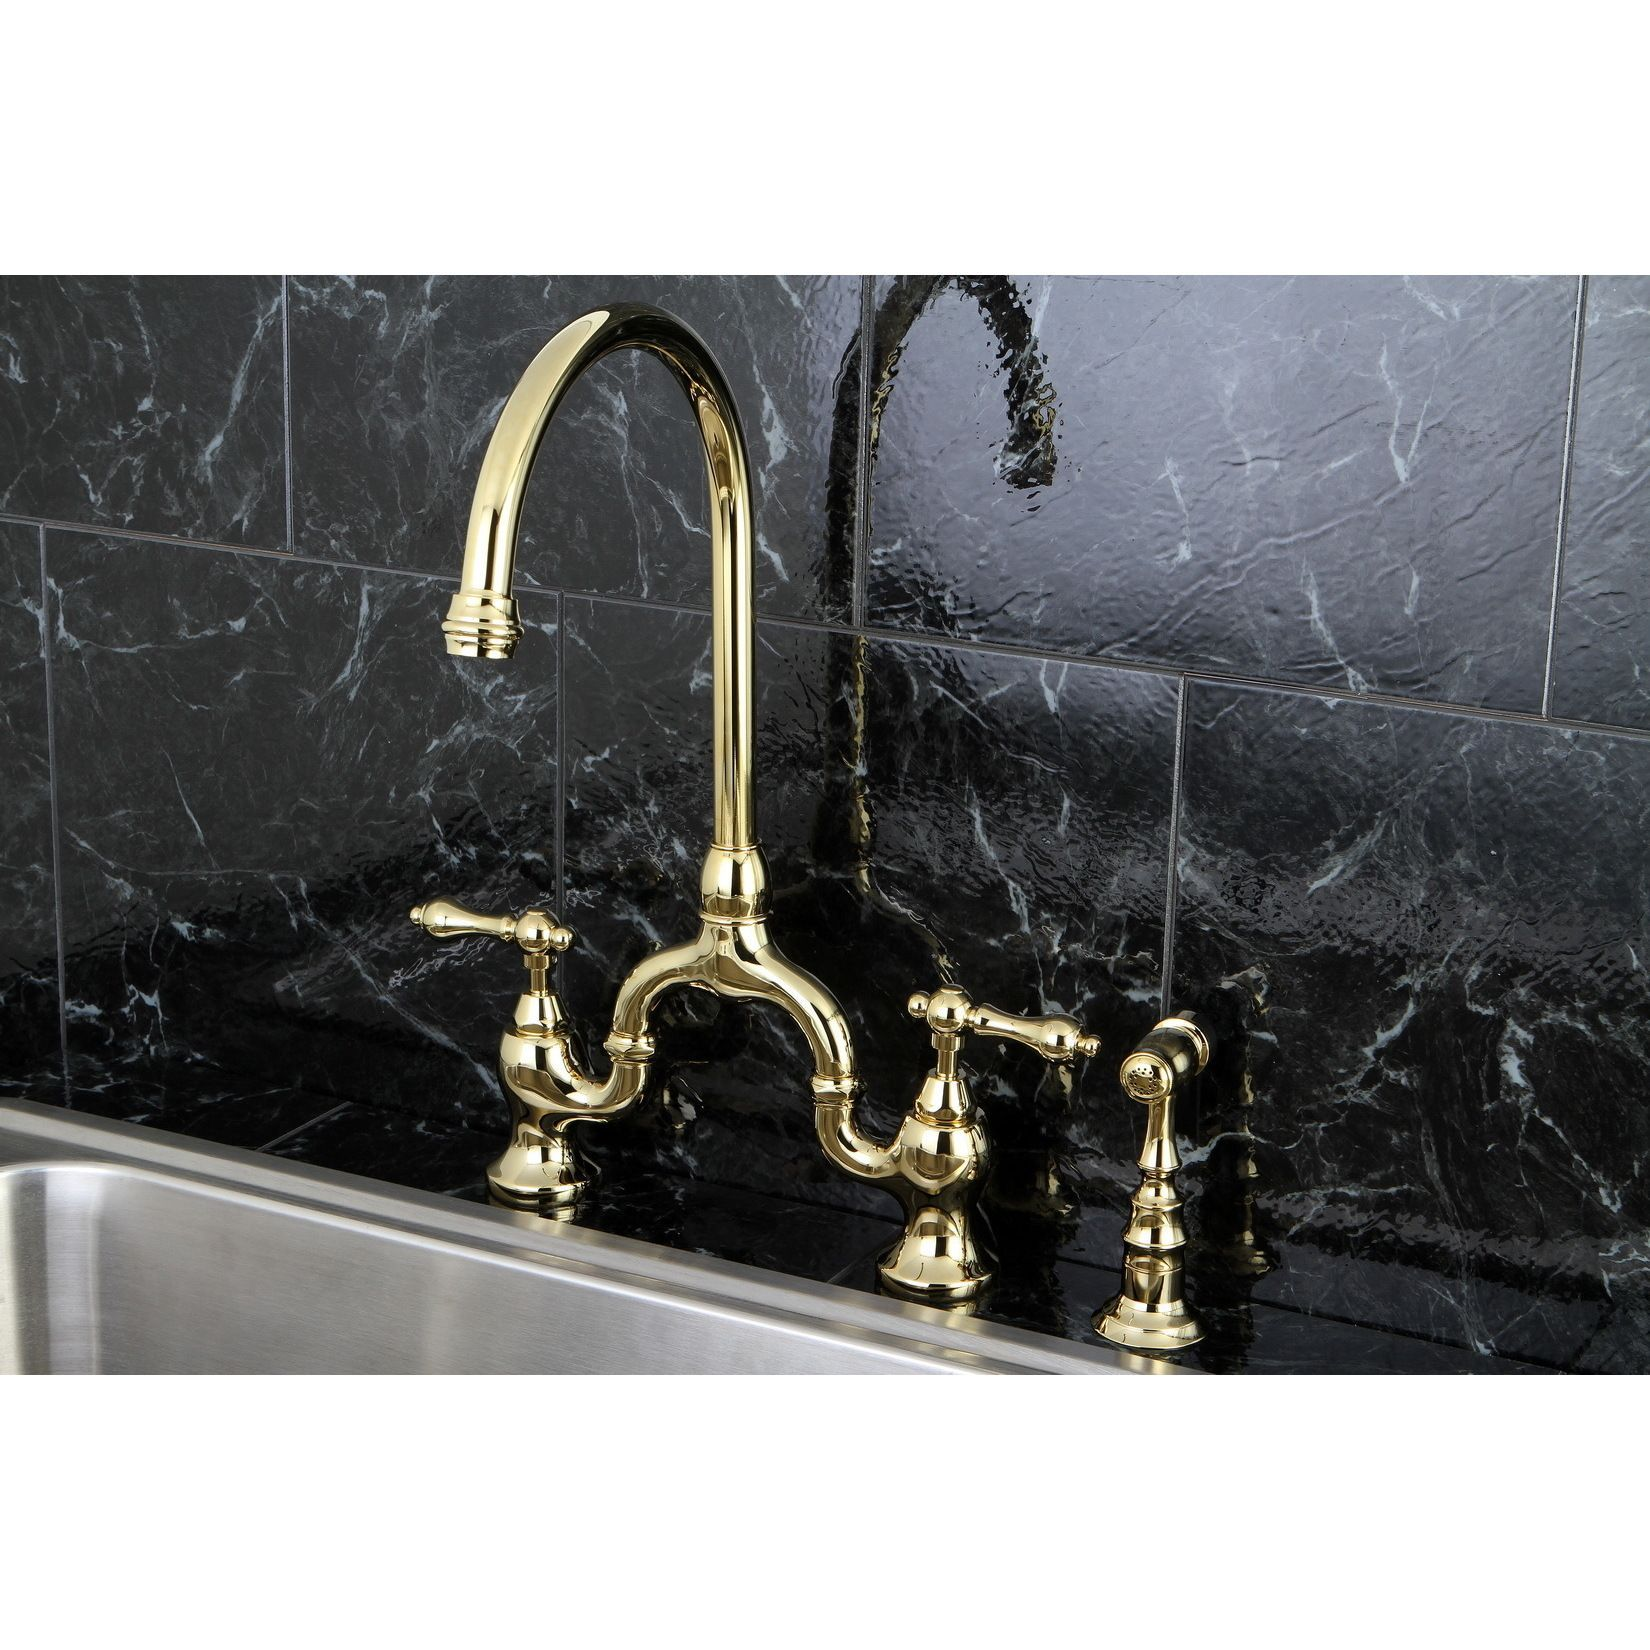 Enhance any kitchen design with this brass kitchen faucet This